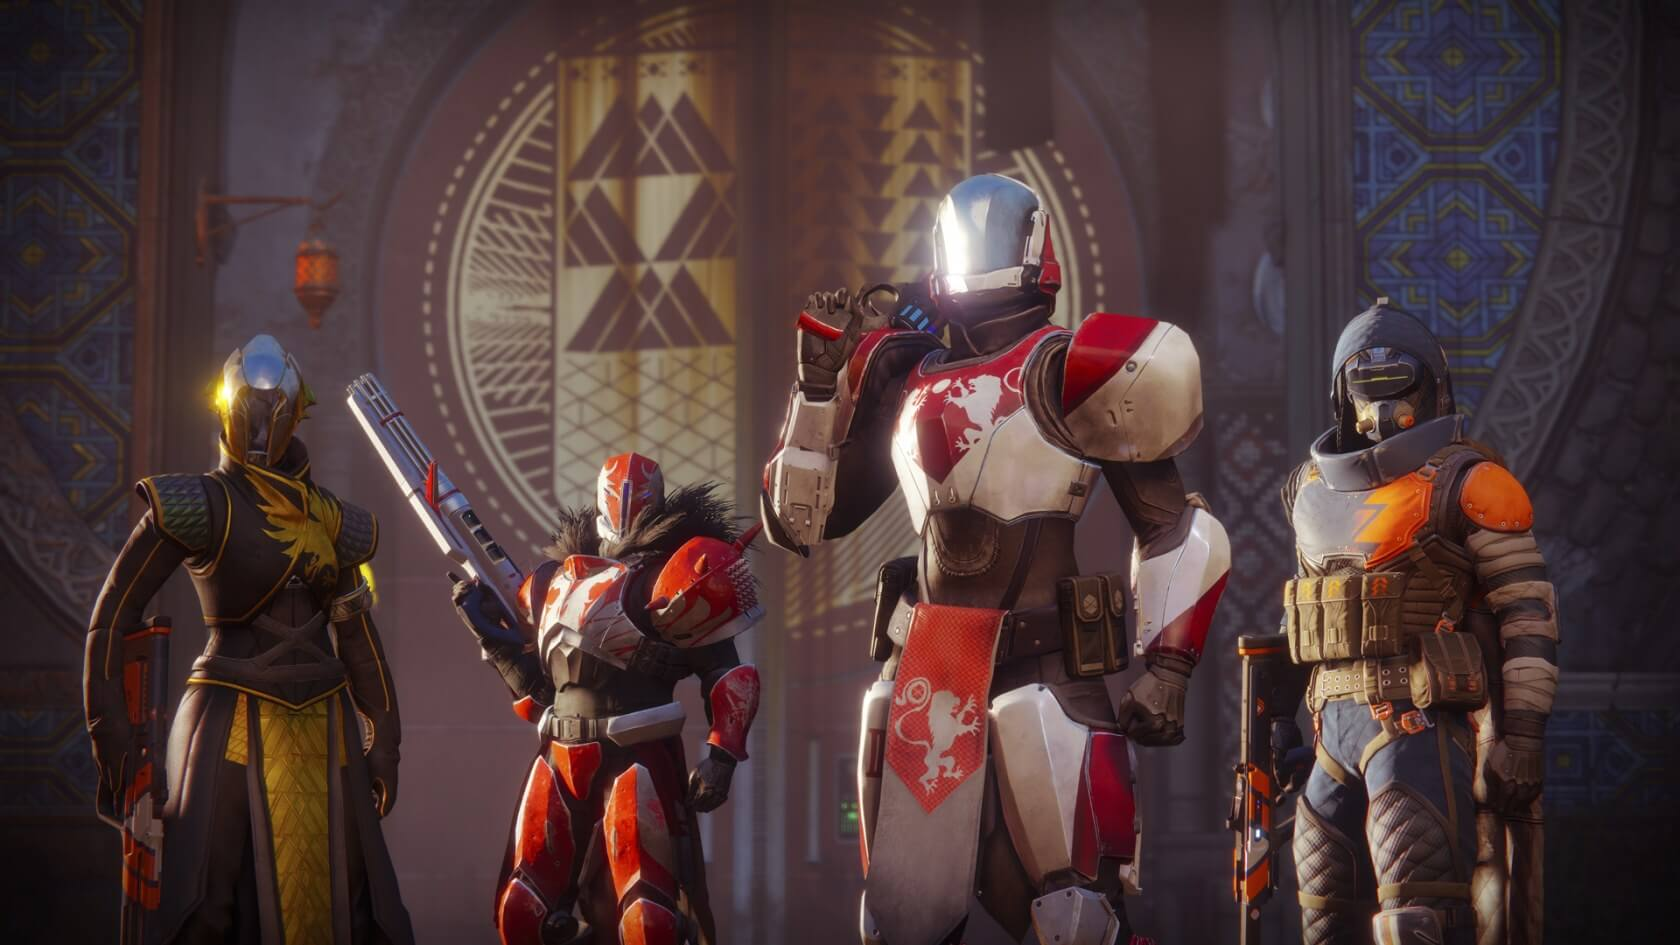 Destiny 3 is in development with a focus on RPG mechanics and 'hardcore' gameplay, rumor claims